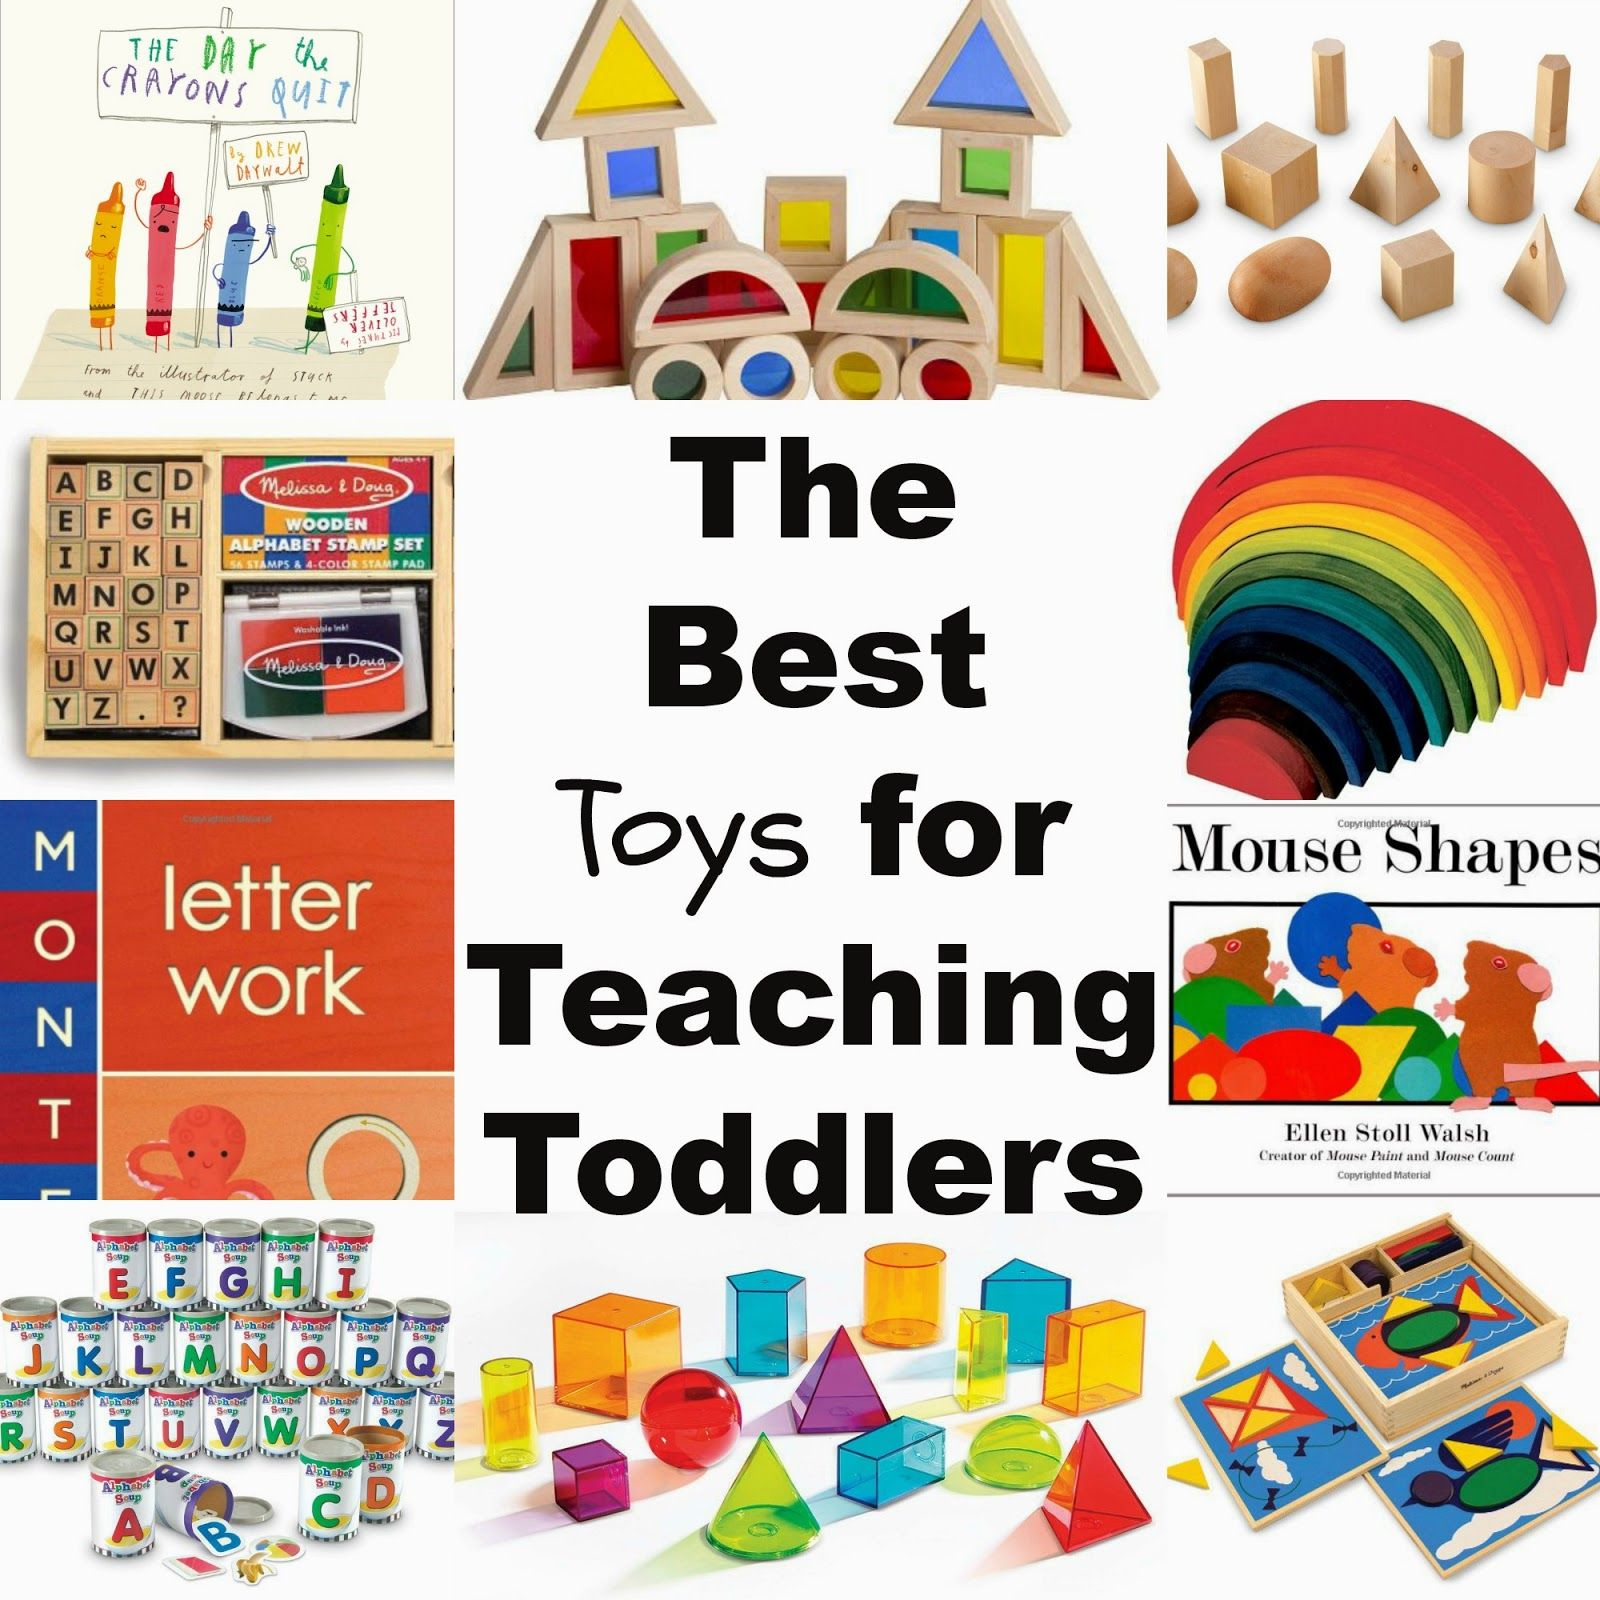 Toys images for boys  The Best Toys for Teaching Toddlers Through Play  Montessori